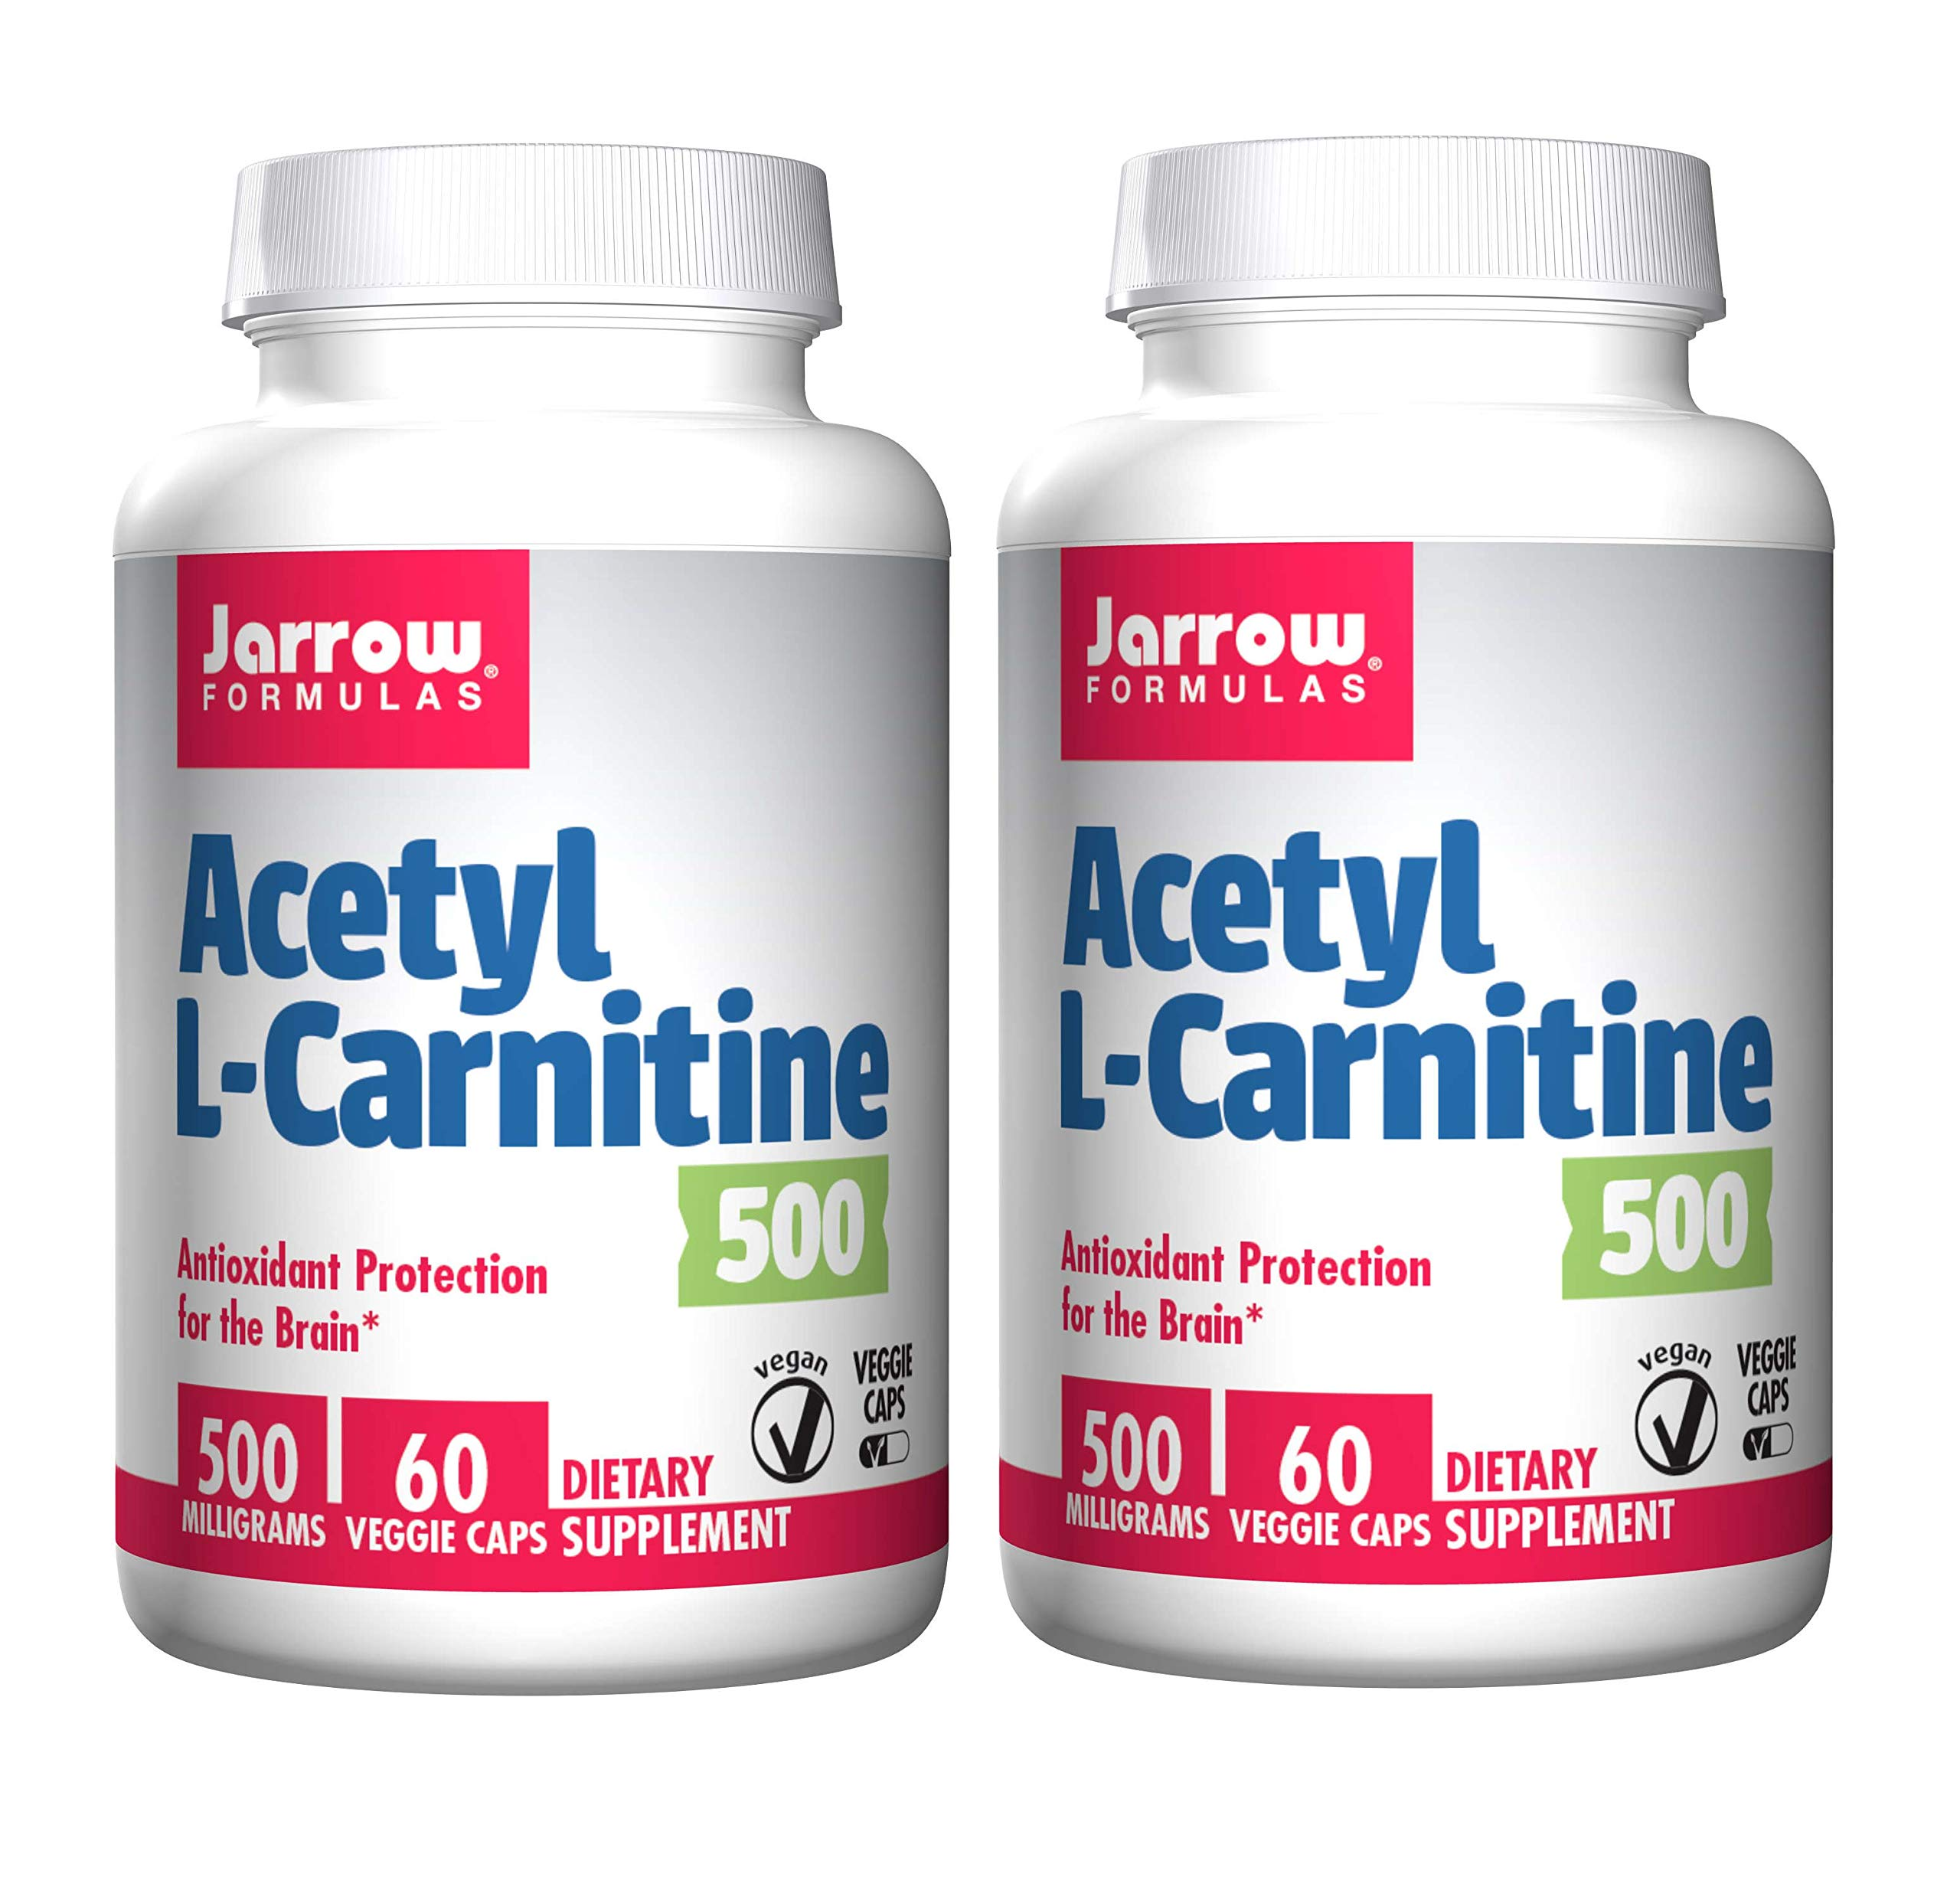 Jarrow Formulas Acetyl L-Carnitine Antioxidant Protection for The Brain and Energy Production 500 Milligrams (60 Veggie Caps)